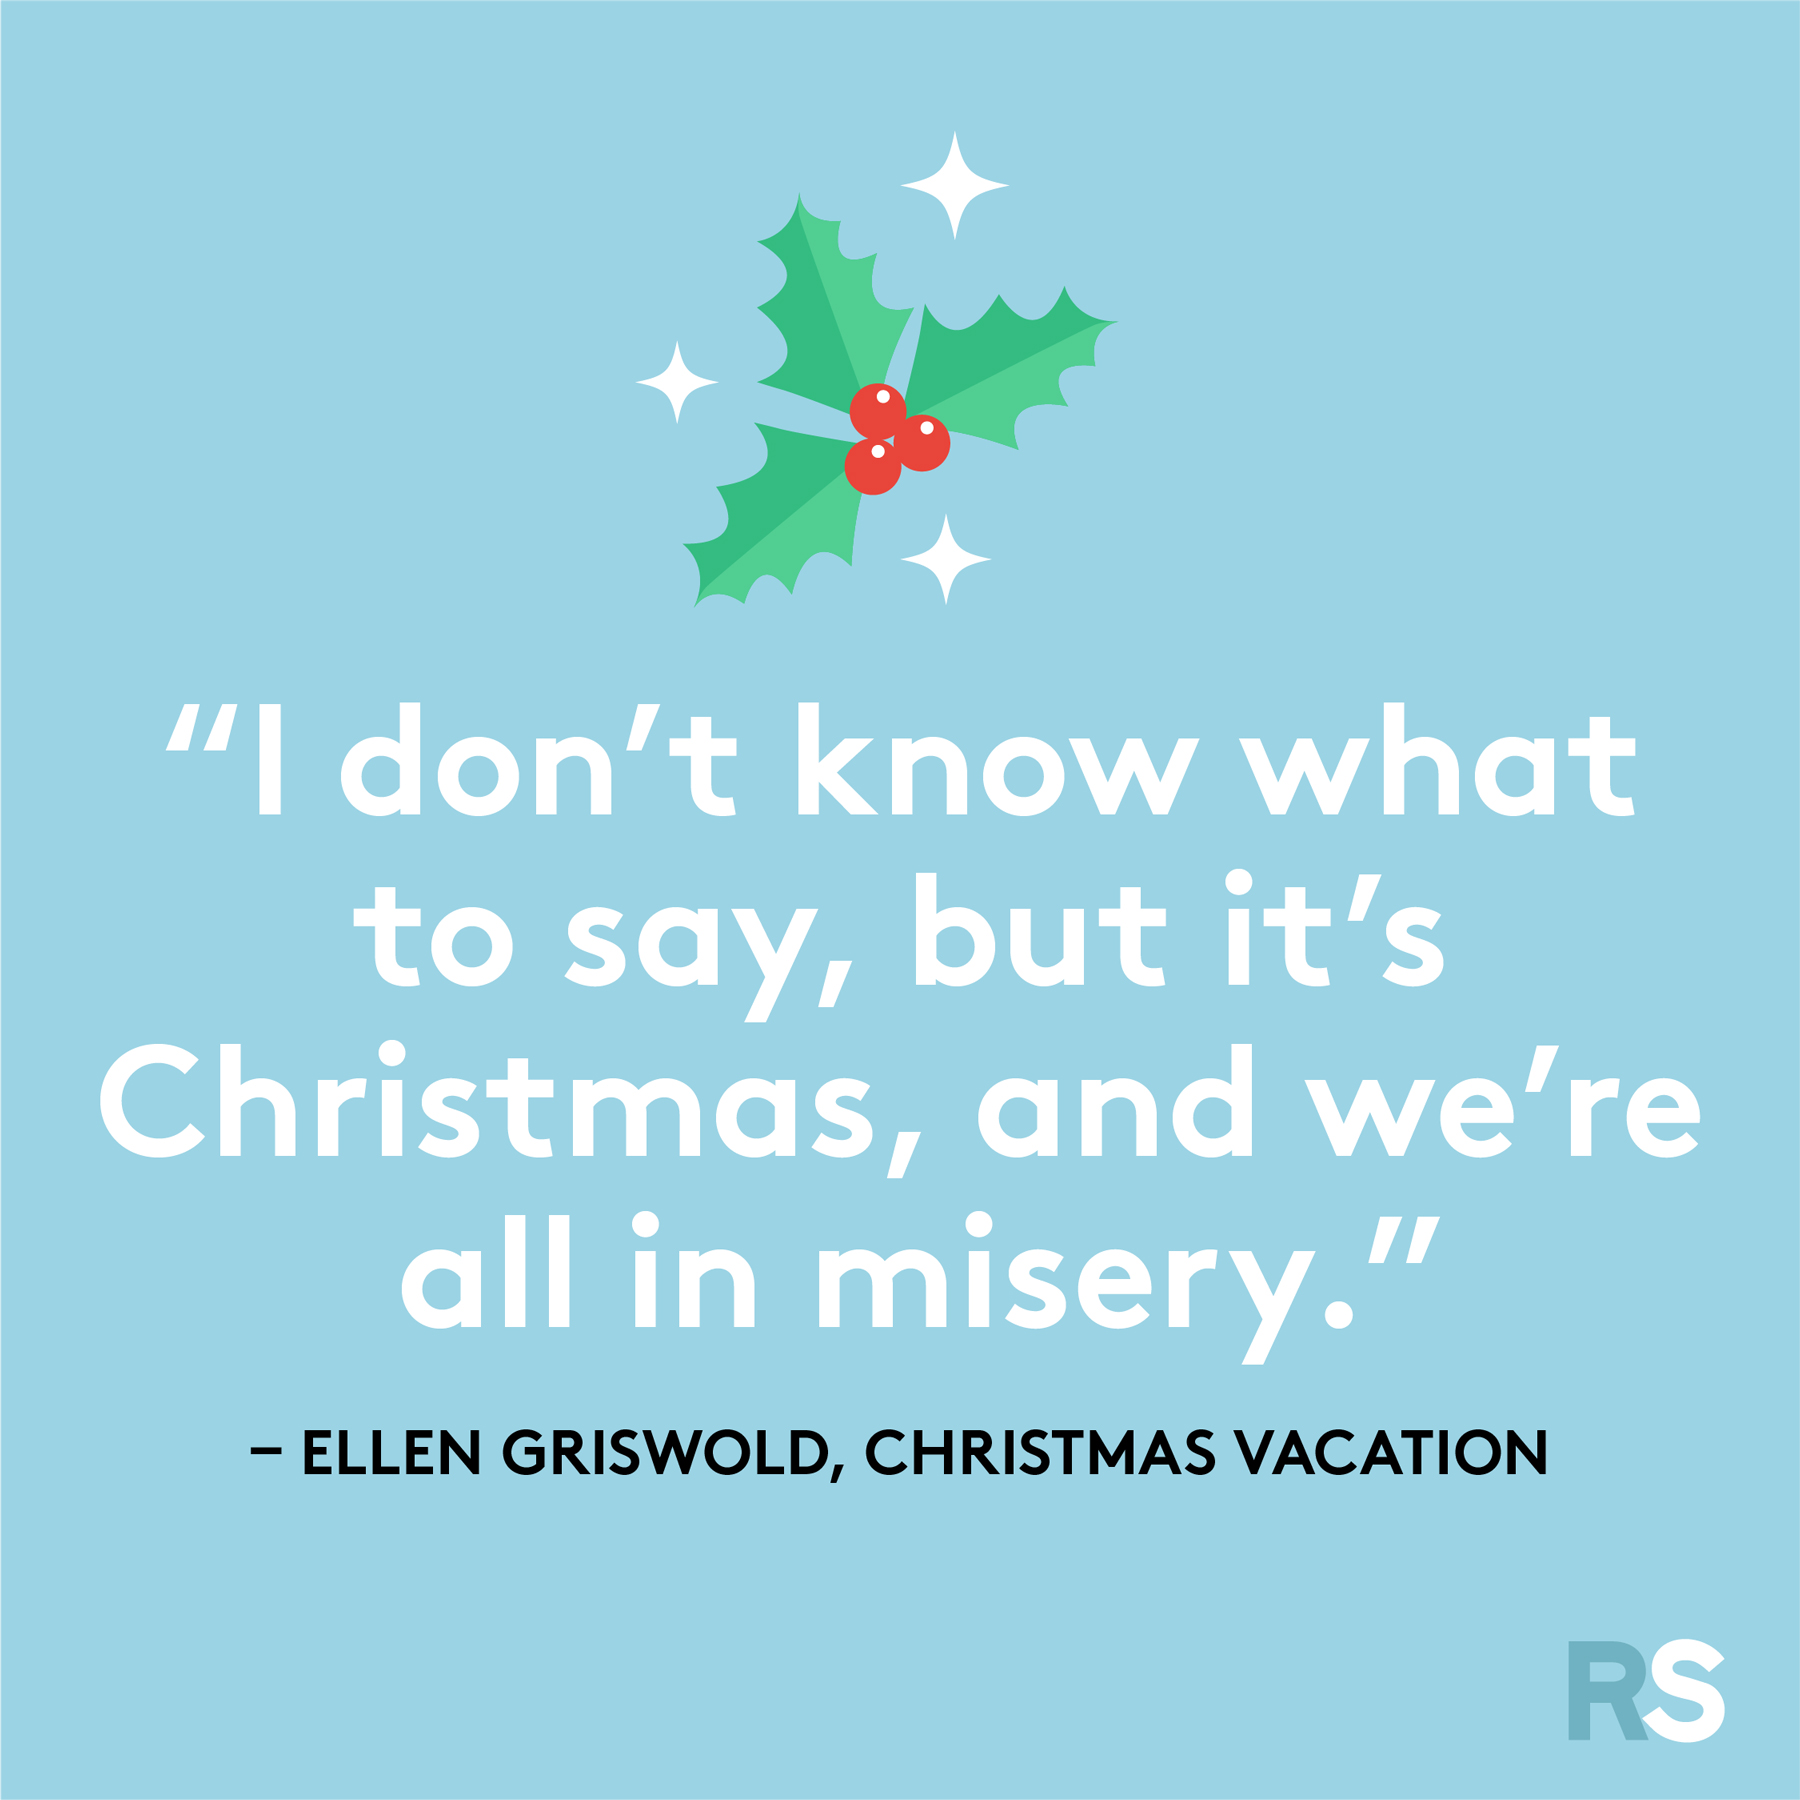 Best Christmas quotes - Ellen Griswold, Christmas Vacation